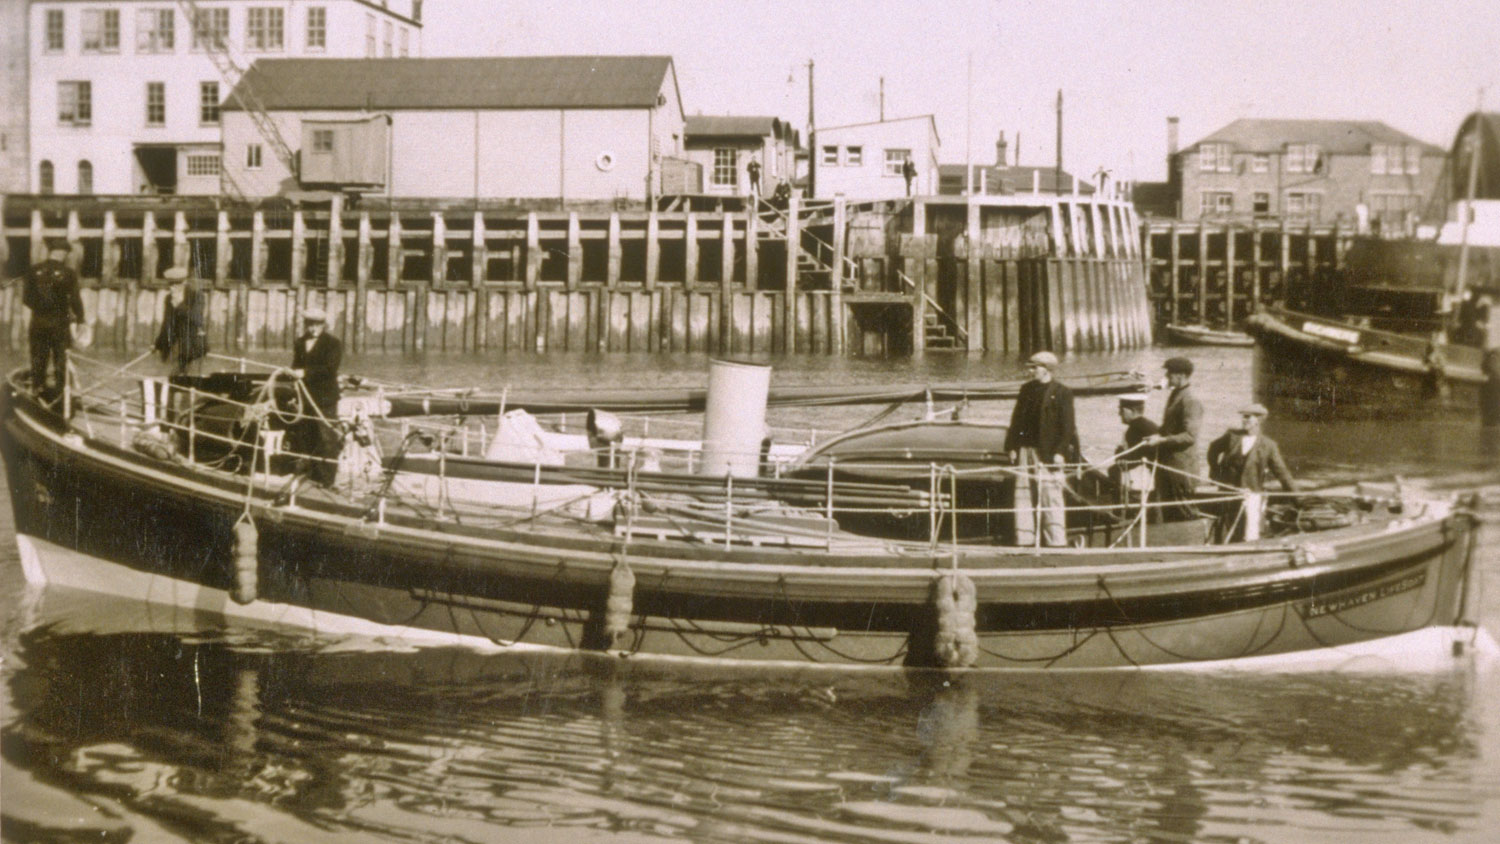 Newhaven lifeboat, Cecil and Lillian Philpott